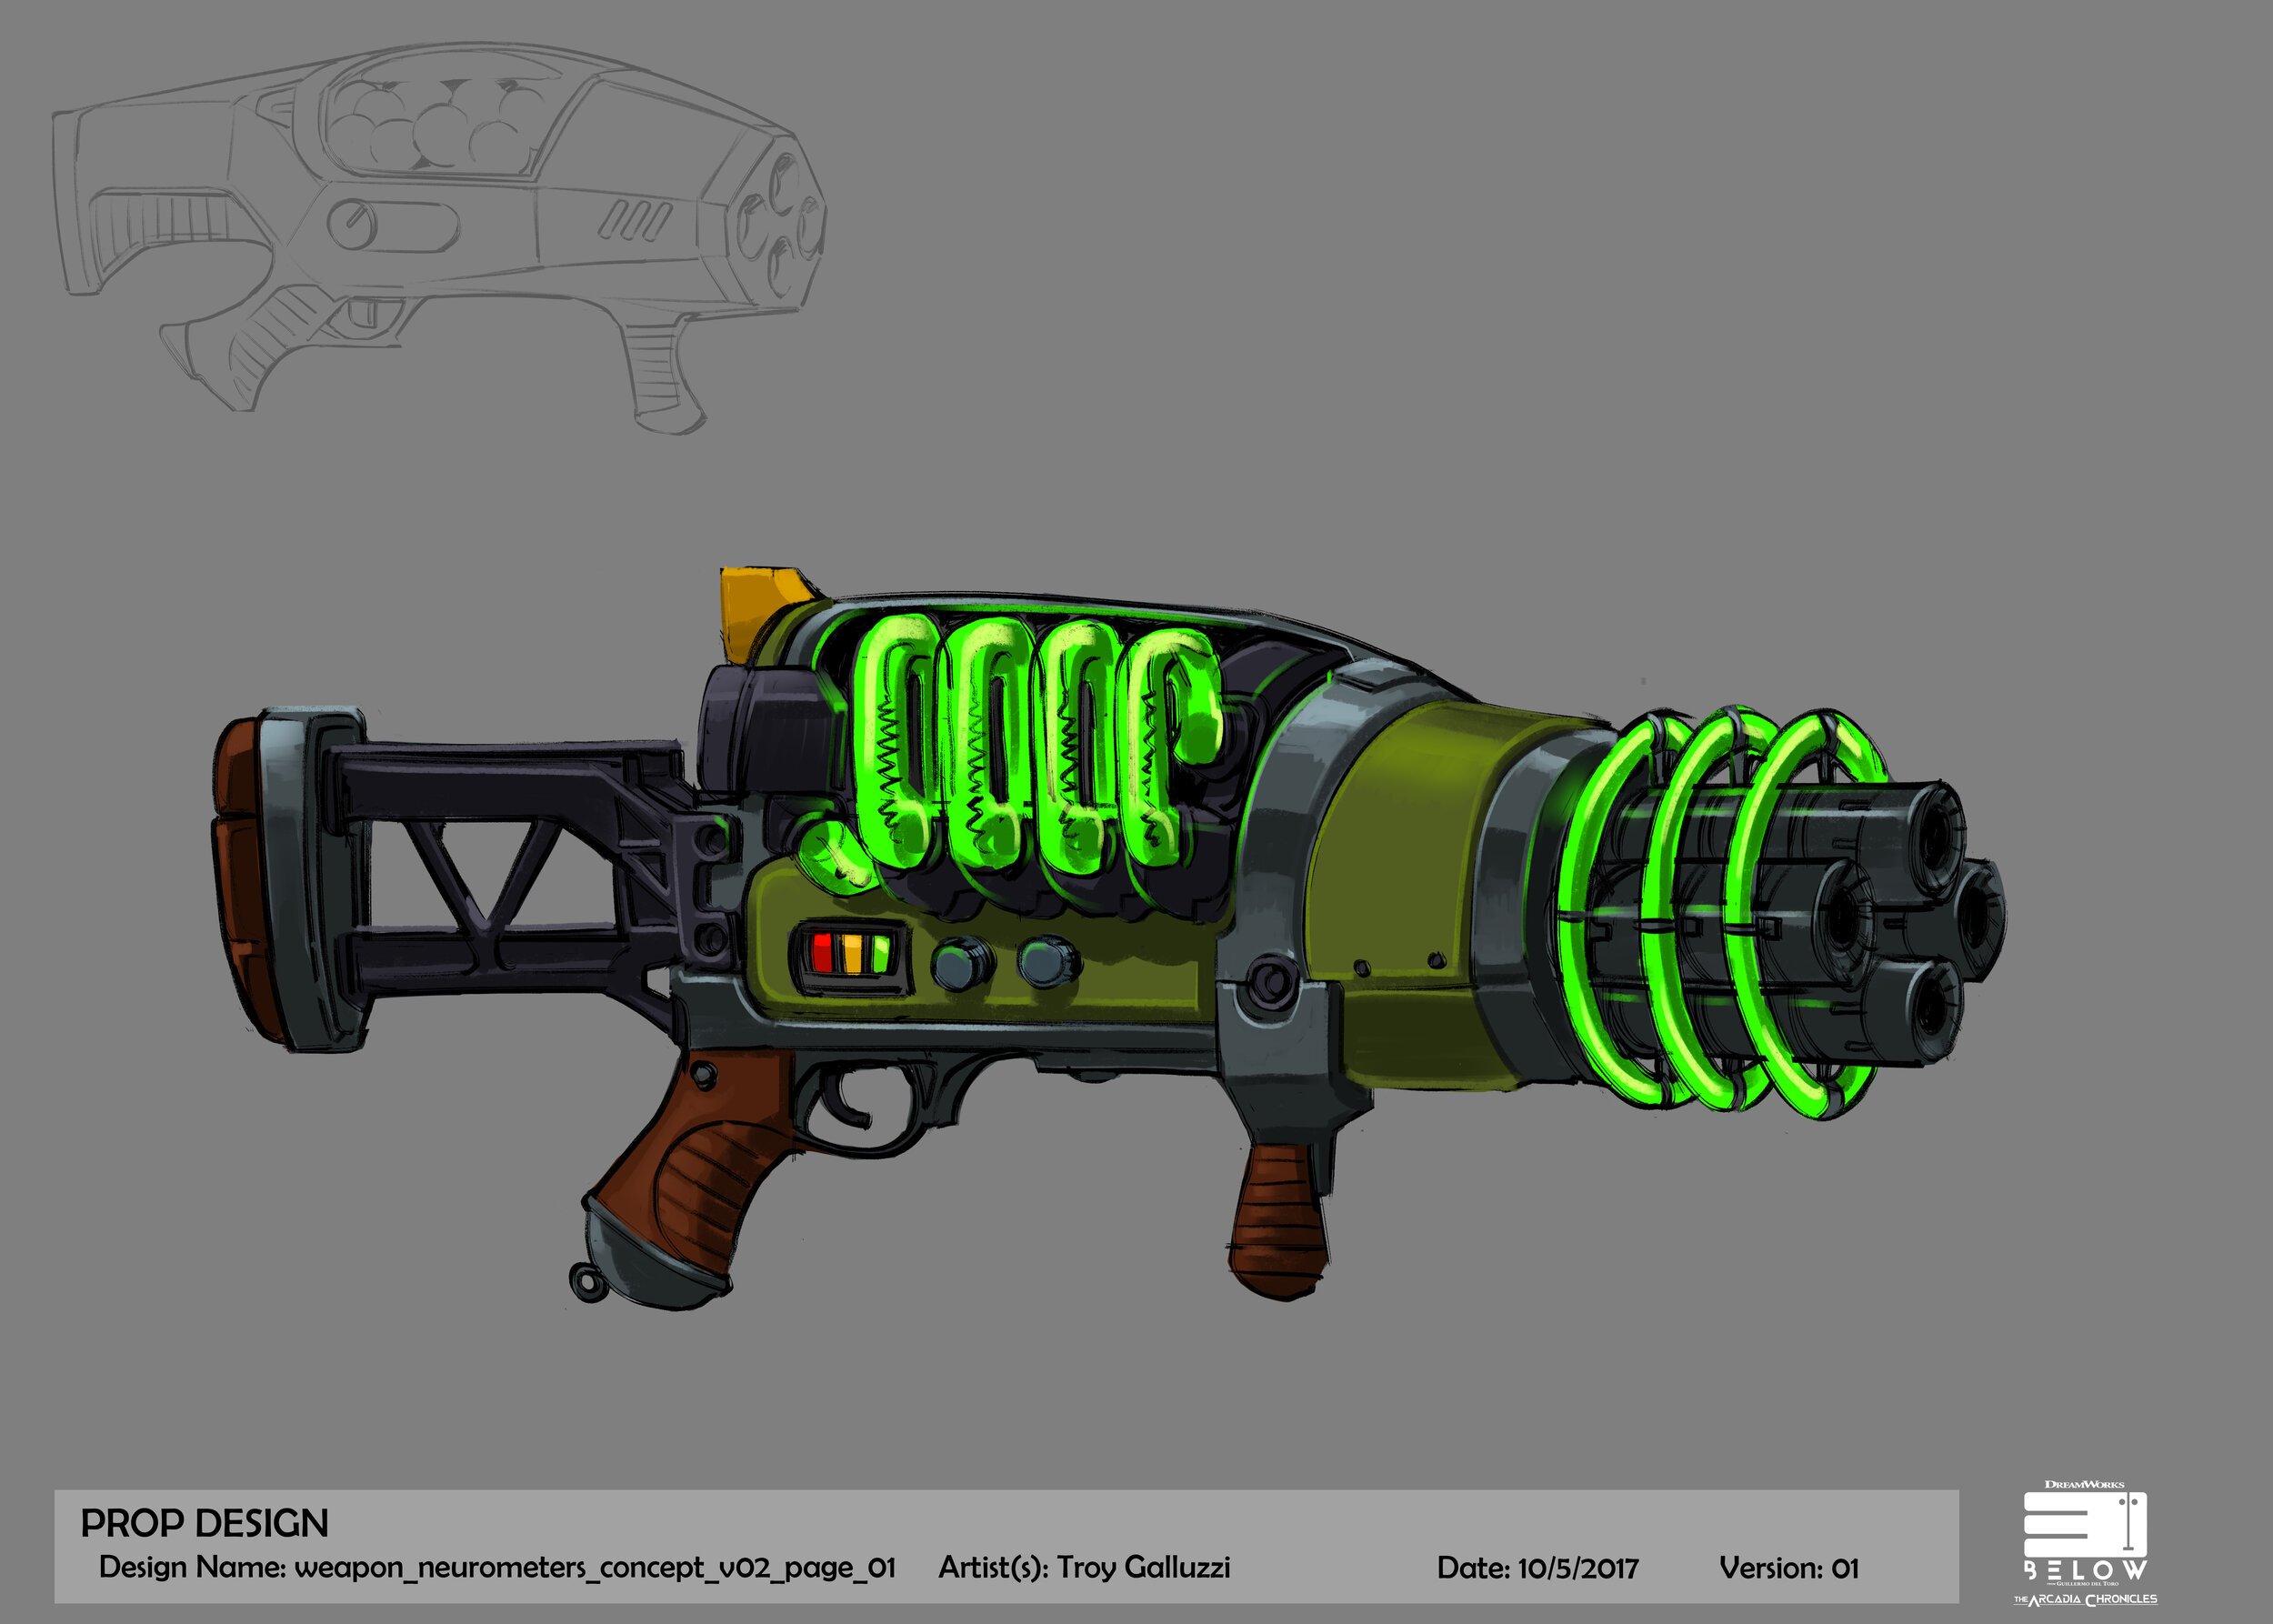 weapon_neurometers_concept_v01_page_04.jpg